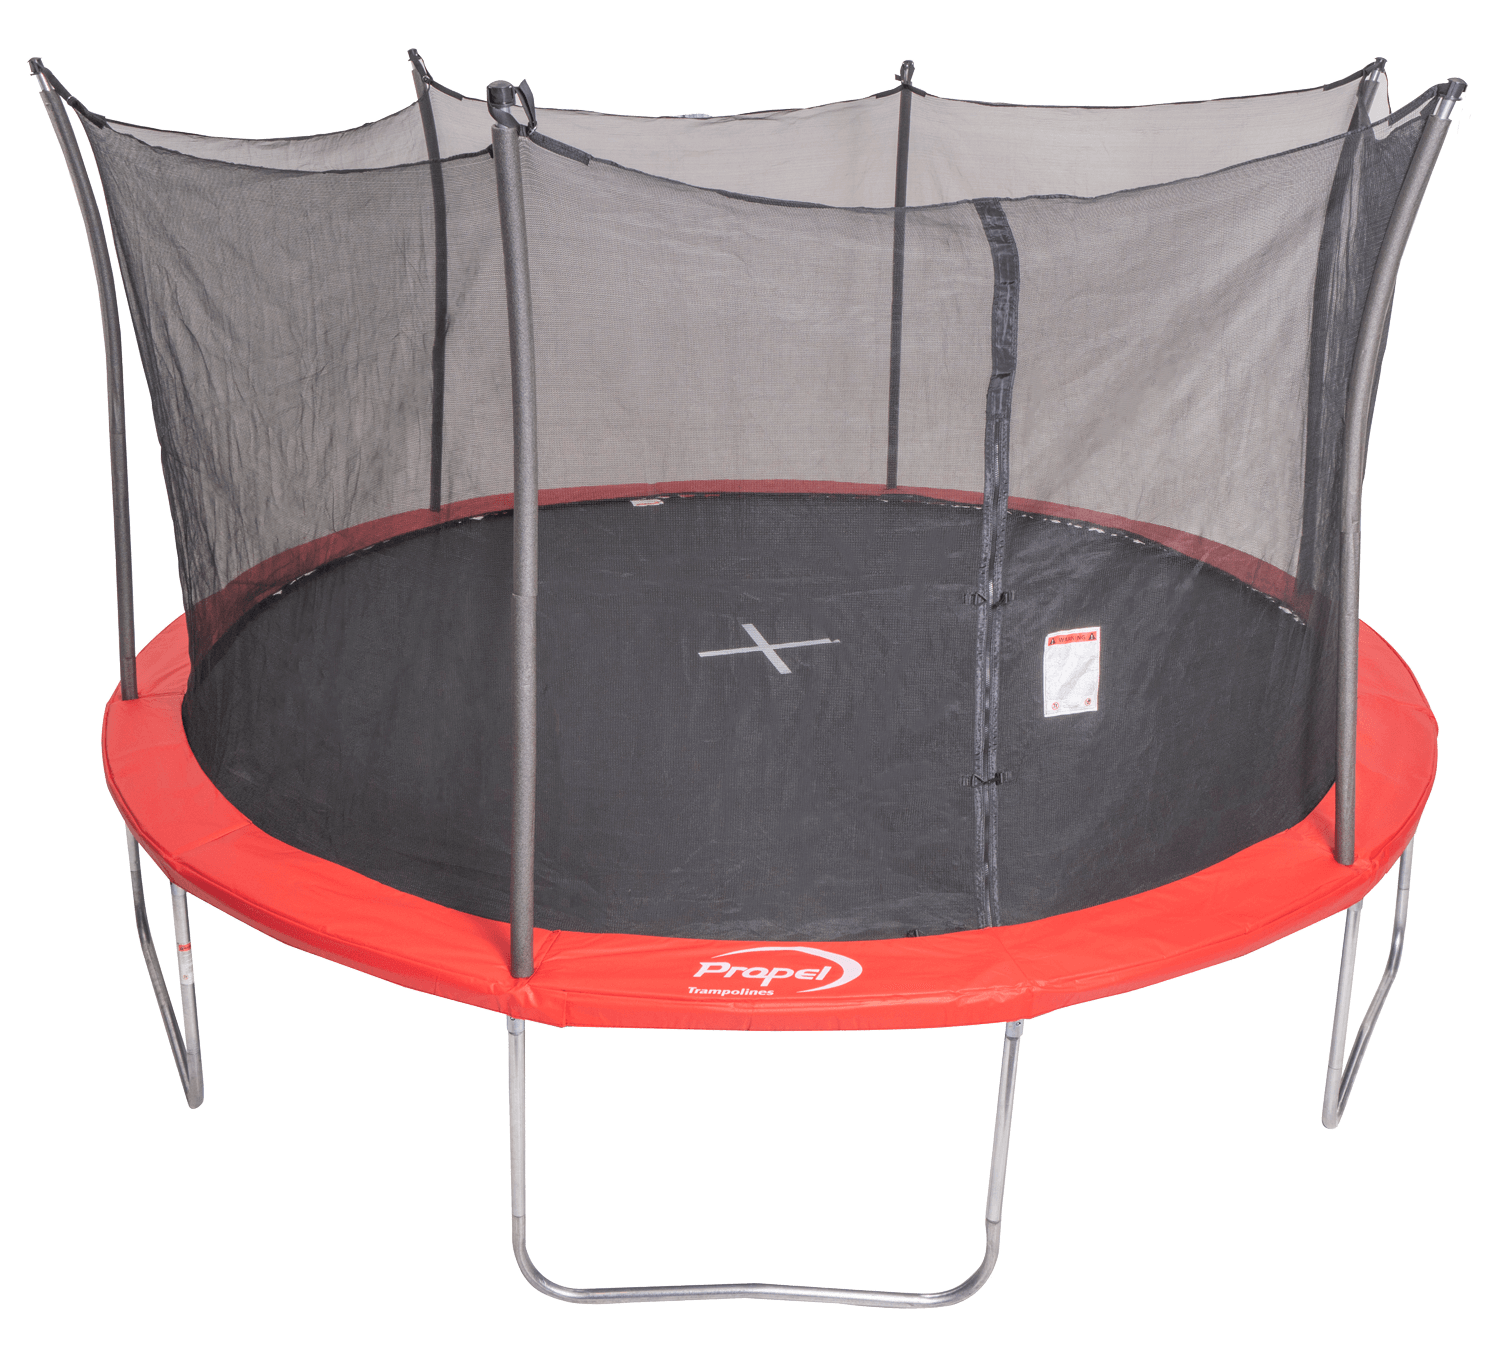 red propel trampoline with safety features